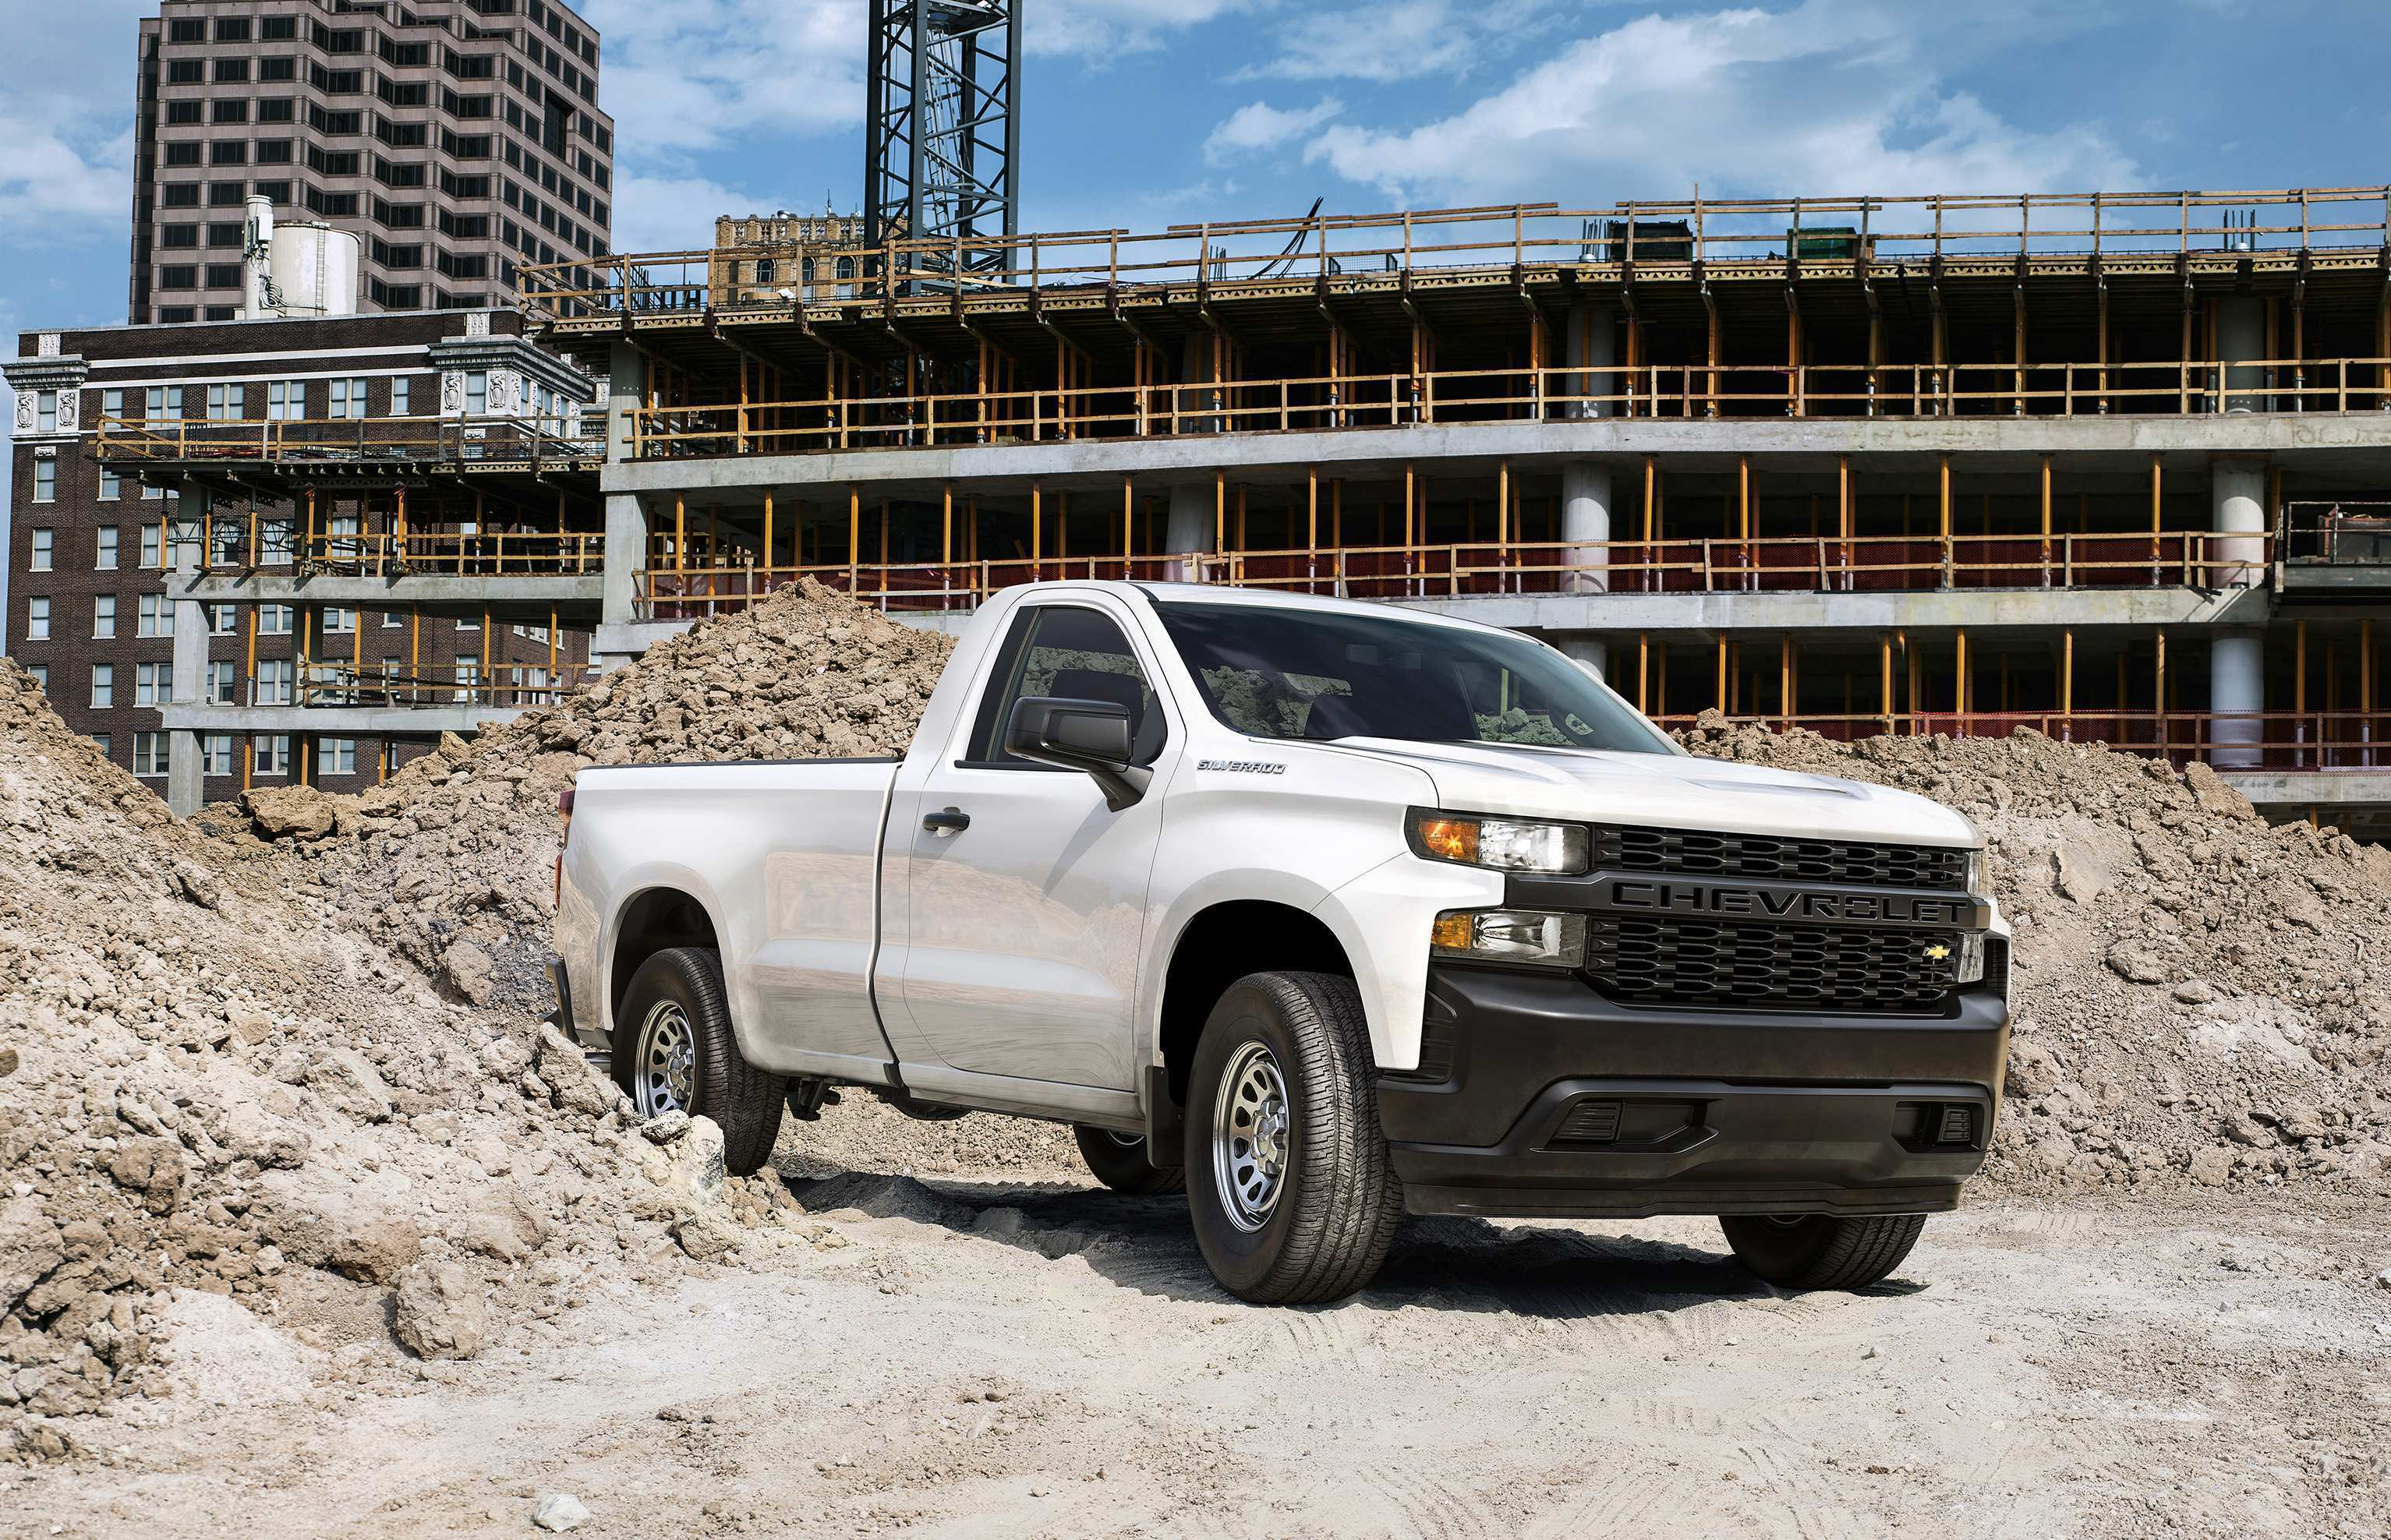 11 Concept of 2020 Chevrolet Silverado 2500 First Drive with 2020 Chevrolet Silverado 2500